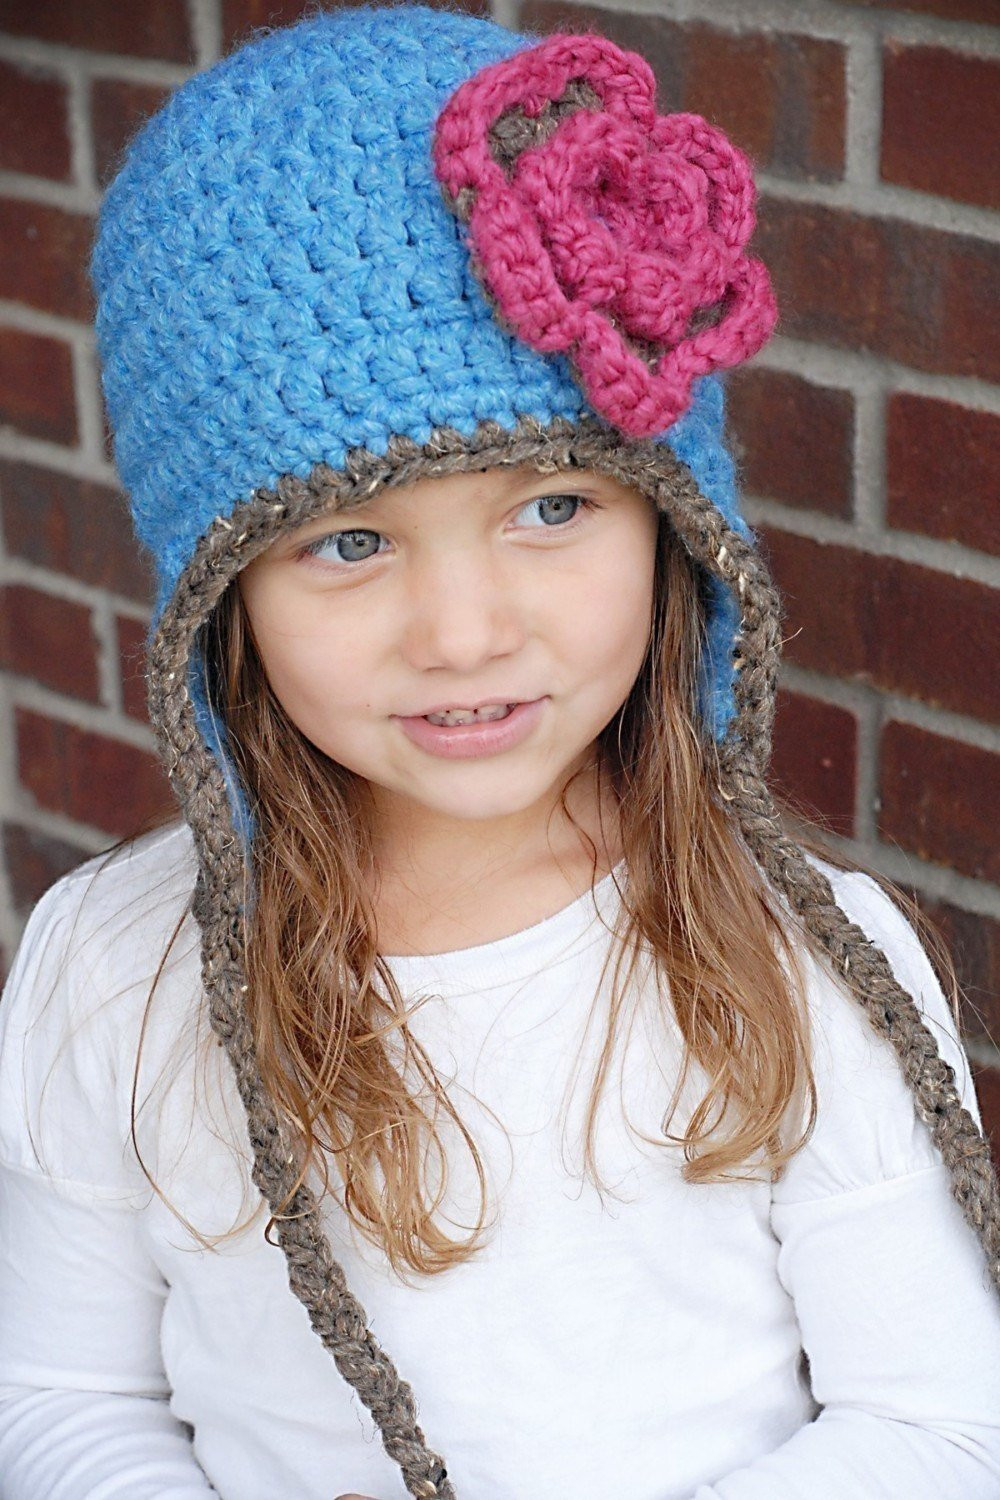 Unique Chunky Earflap Hat Crochet Pattern Instant Download Earflap Hat Crochet Pattern Of Wonderful 43 Images Earflap Hat Crochet Pattern